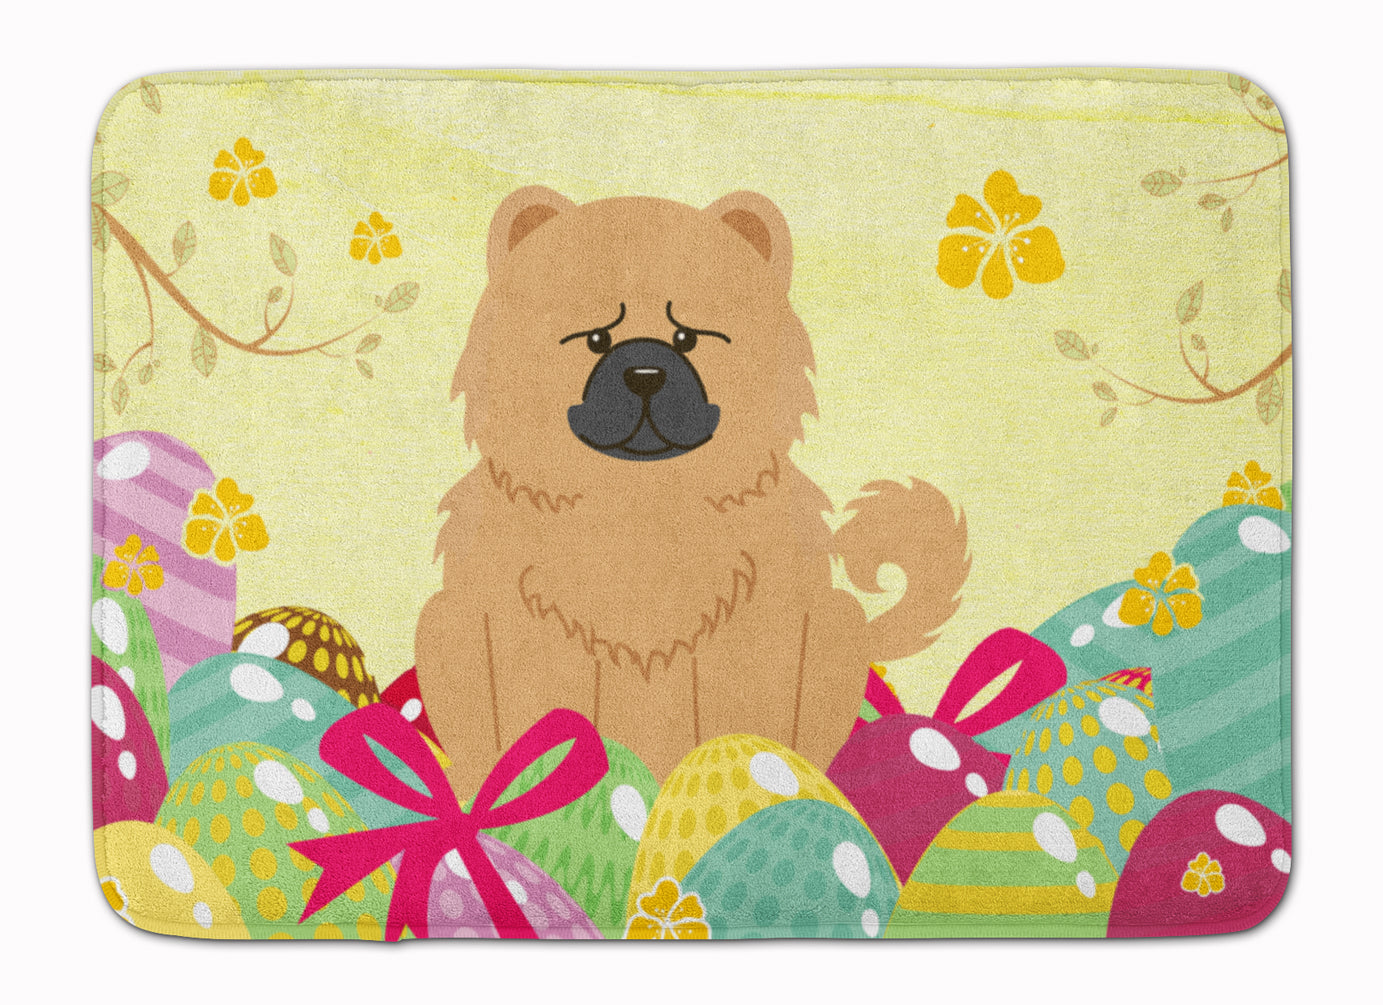 Easter Eggs Chow Chow Cream Machine Washable Memory Foam Mat BB6144RUG by Caroline's Treasures